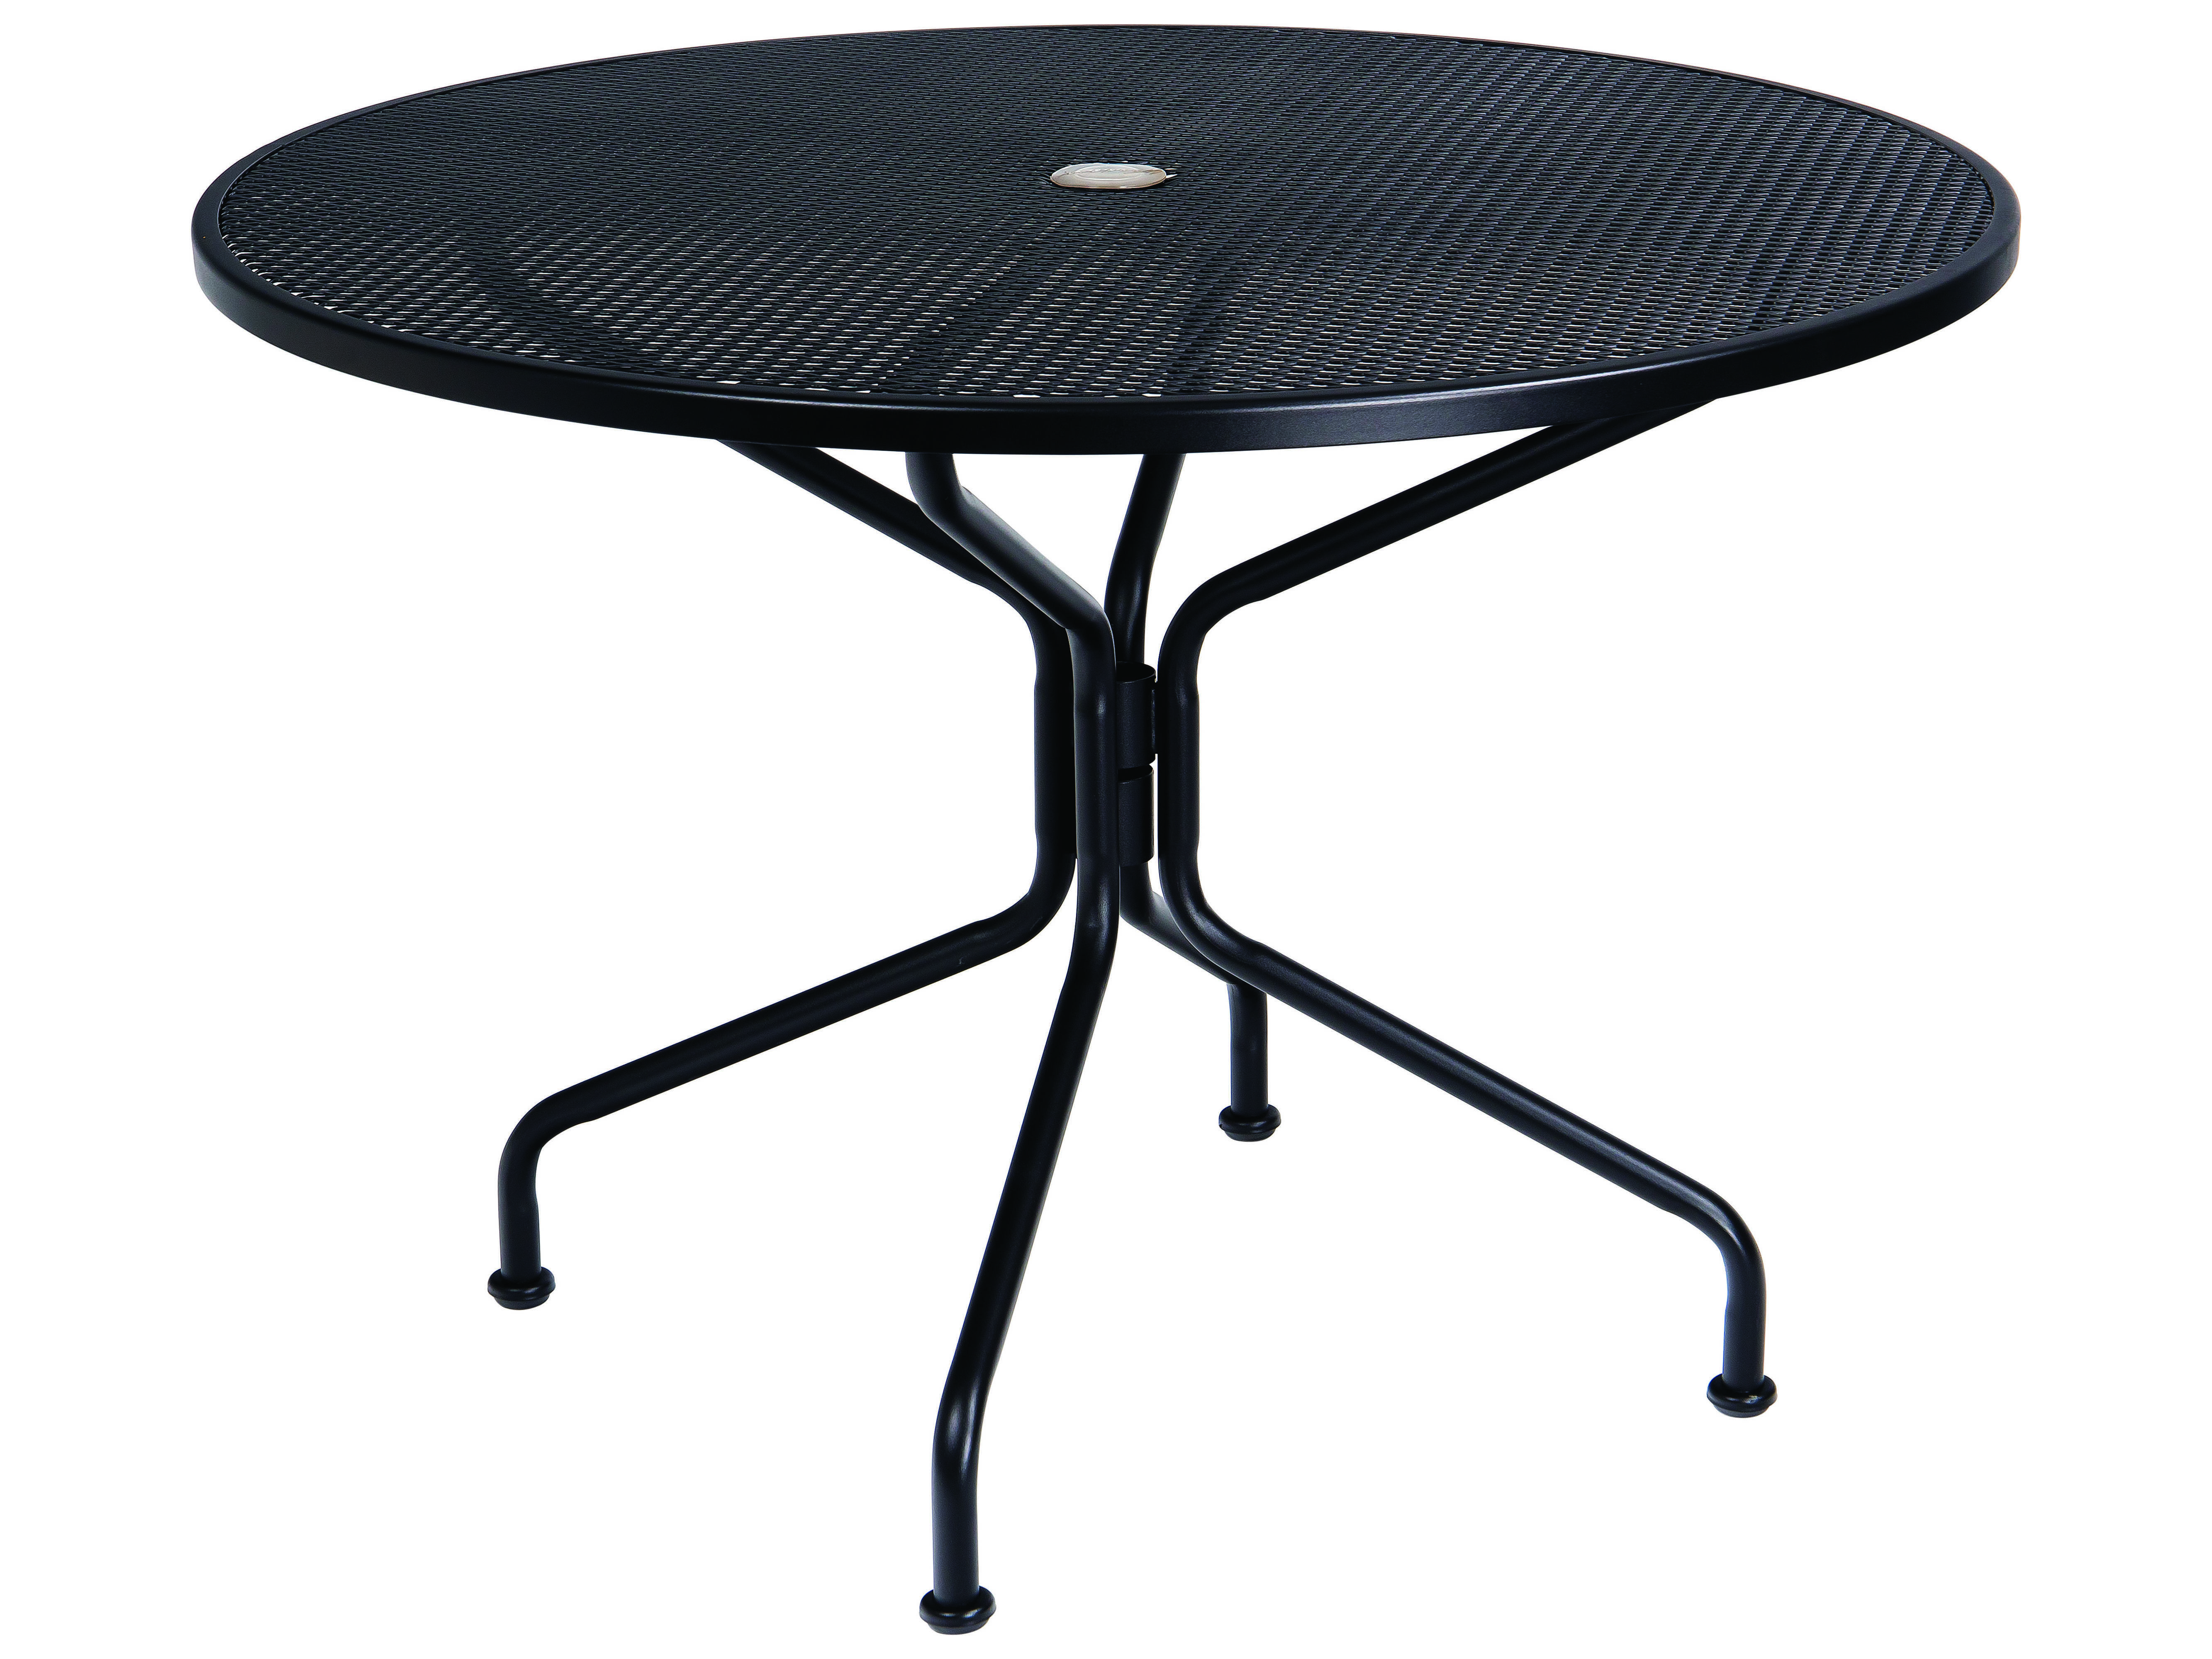 Small patio table with umbrella hole 45 quot picnic table - Hover To Zoom